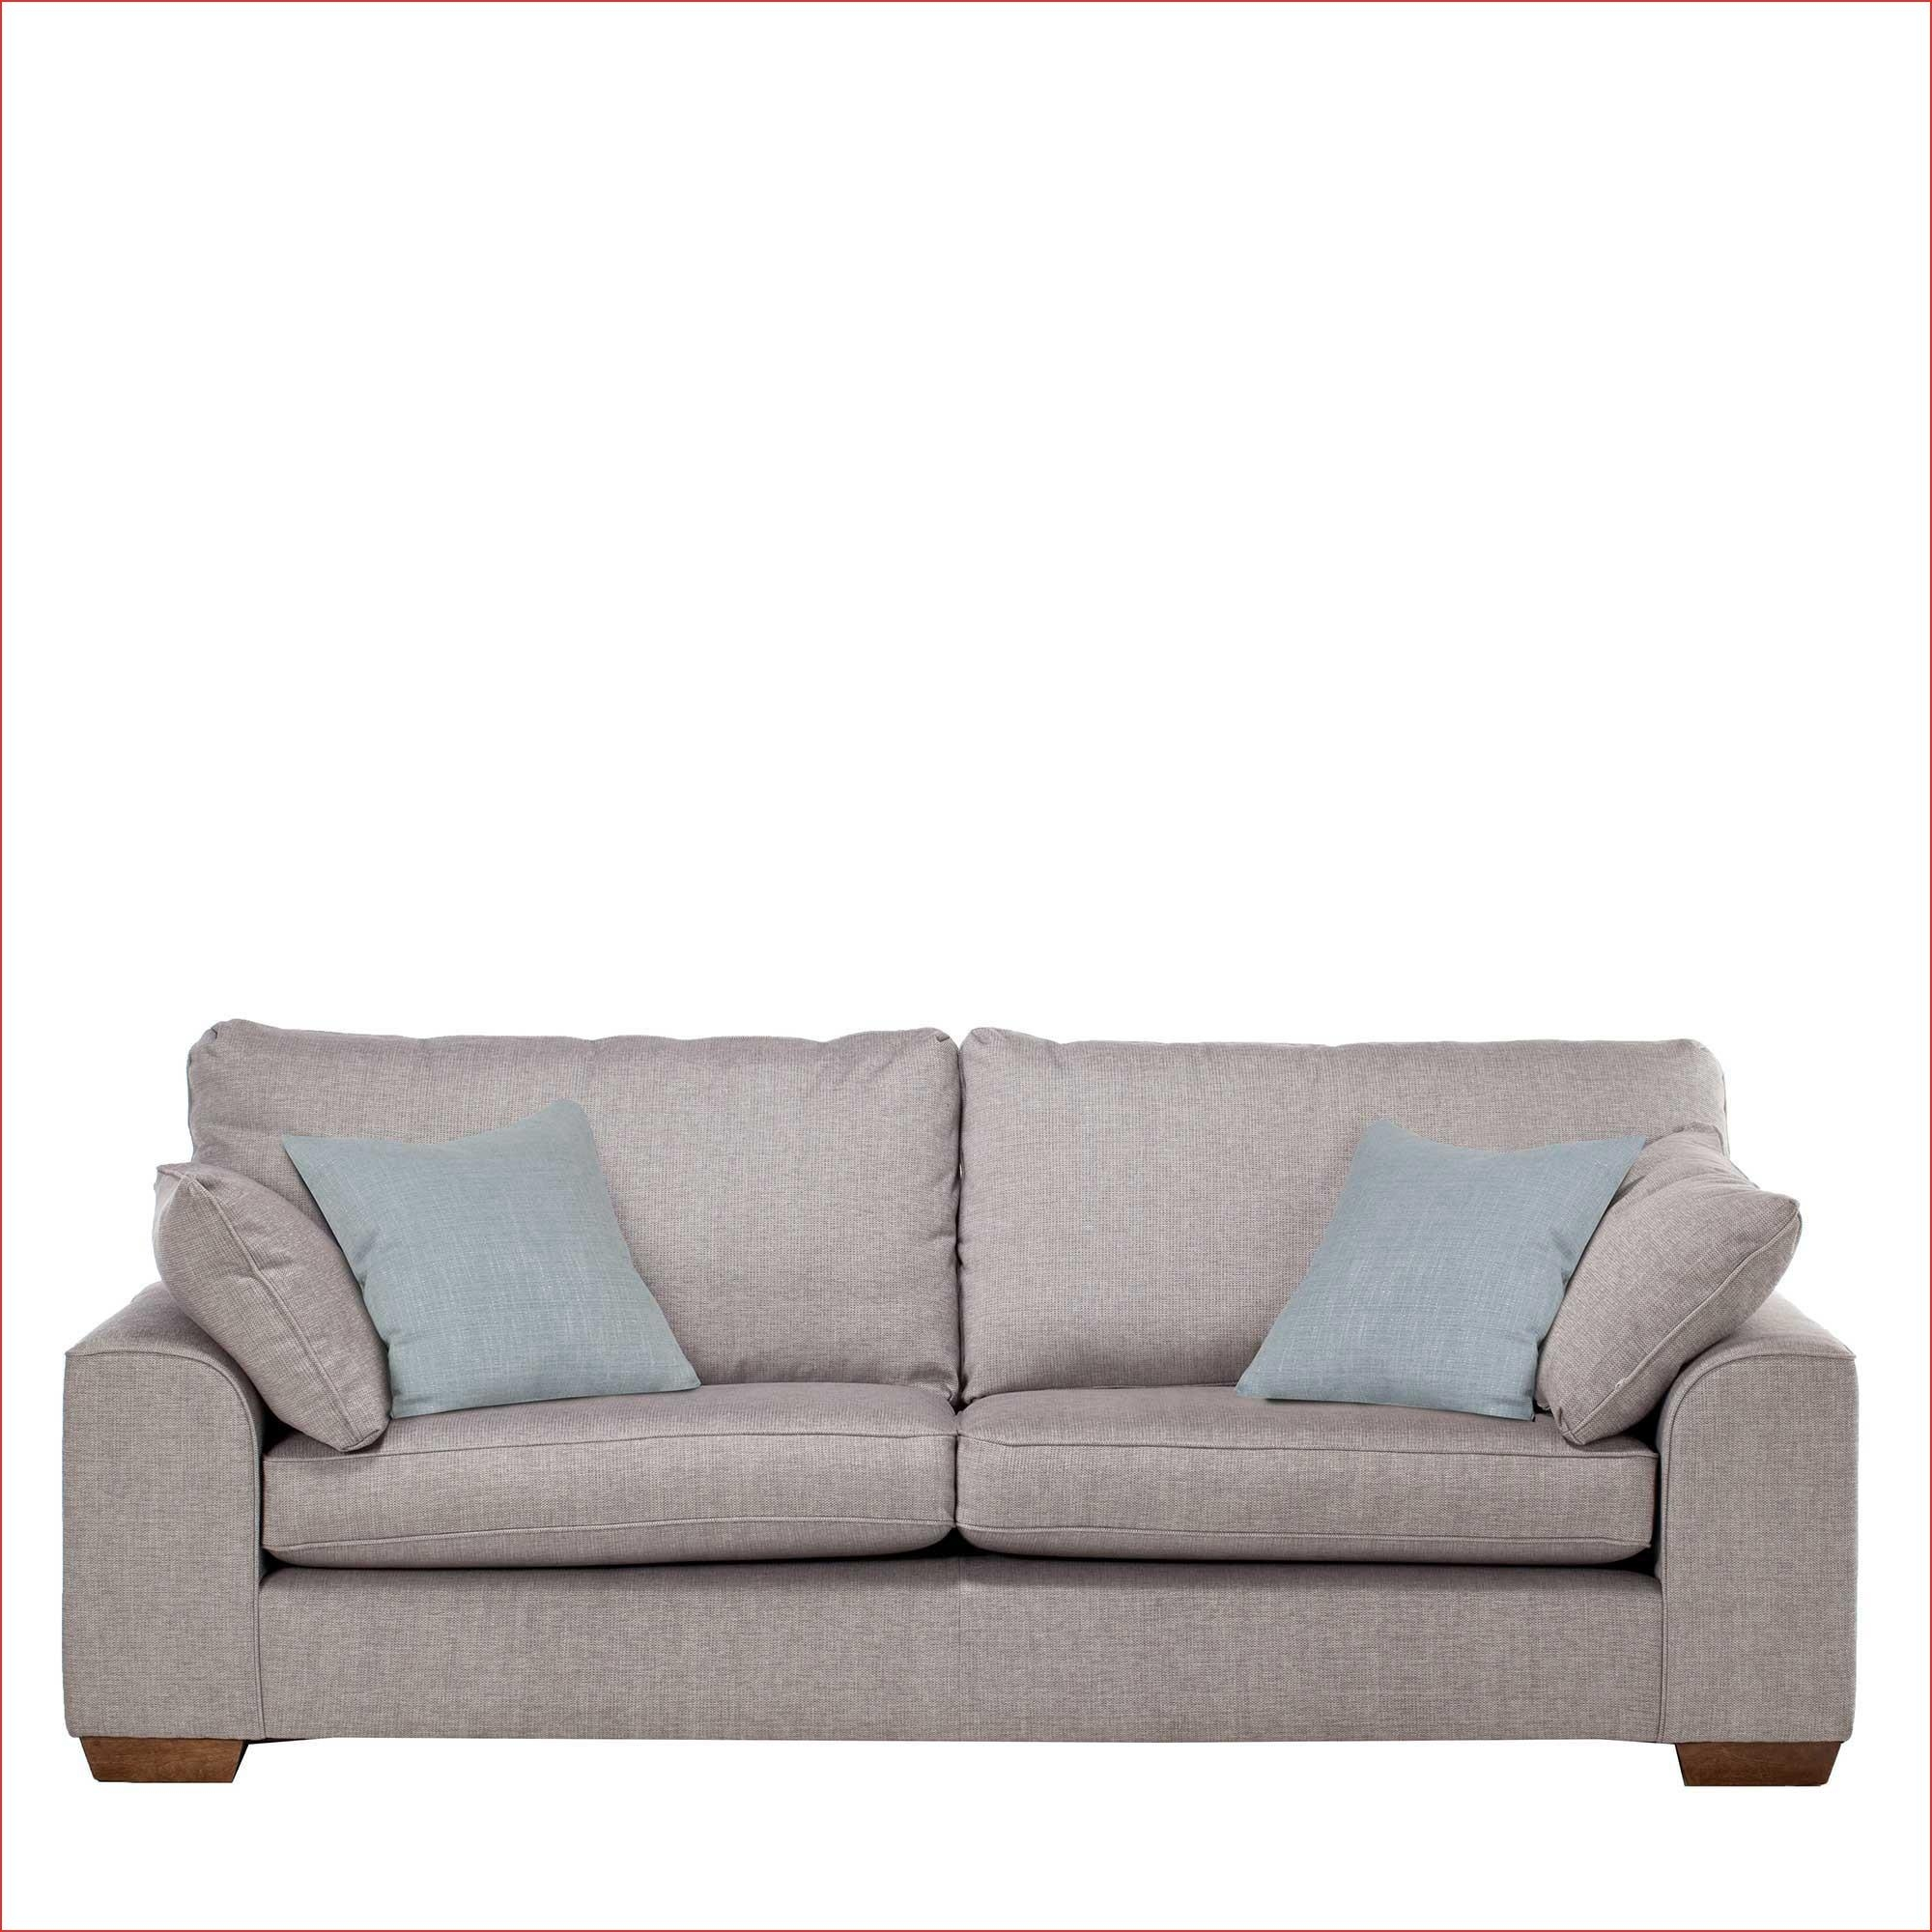 Large Sofas 20 43 Choices Of Very Large Sofas Sofa Ideas